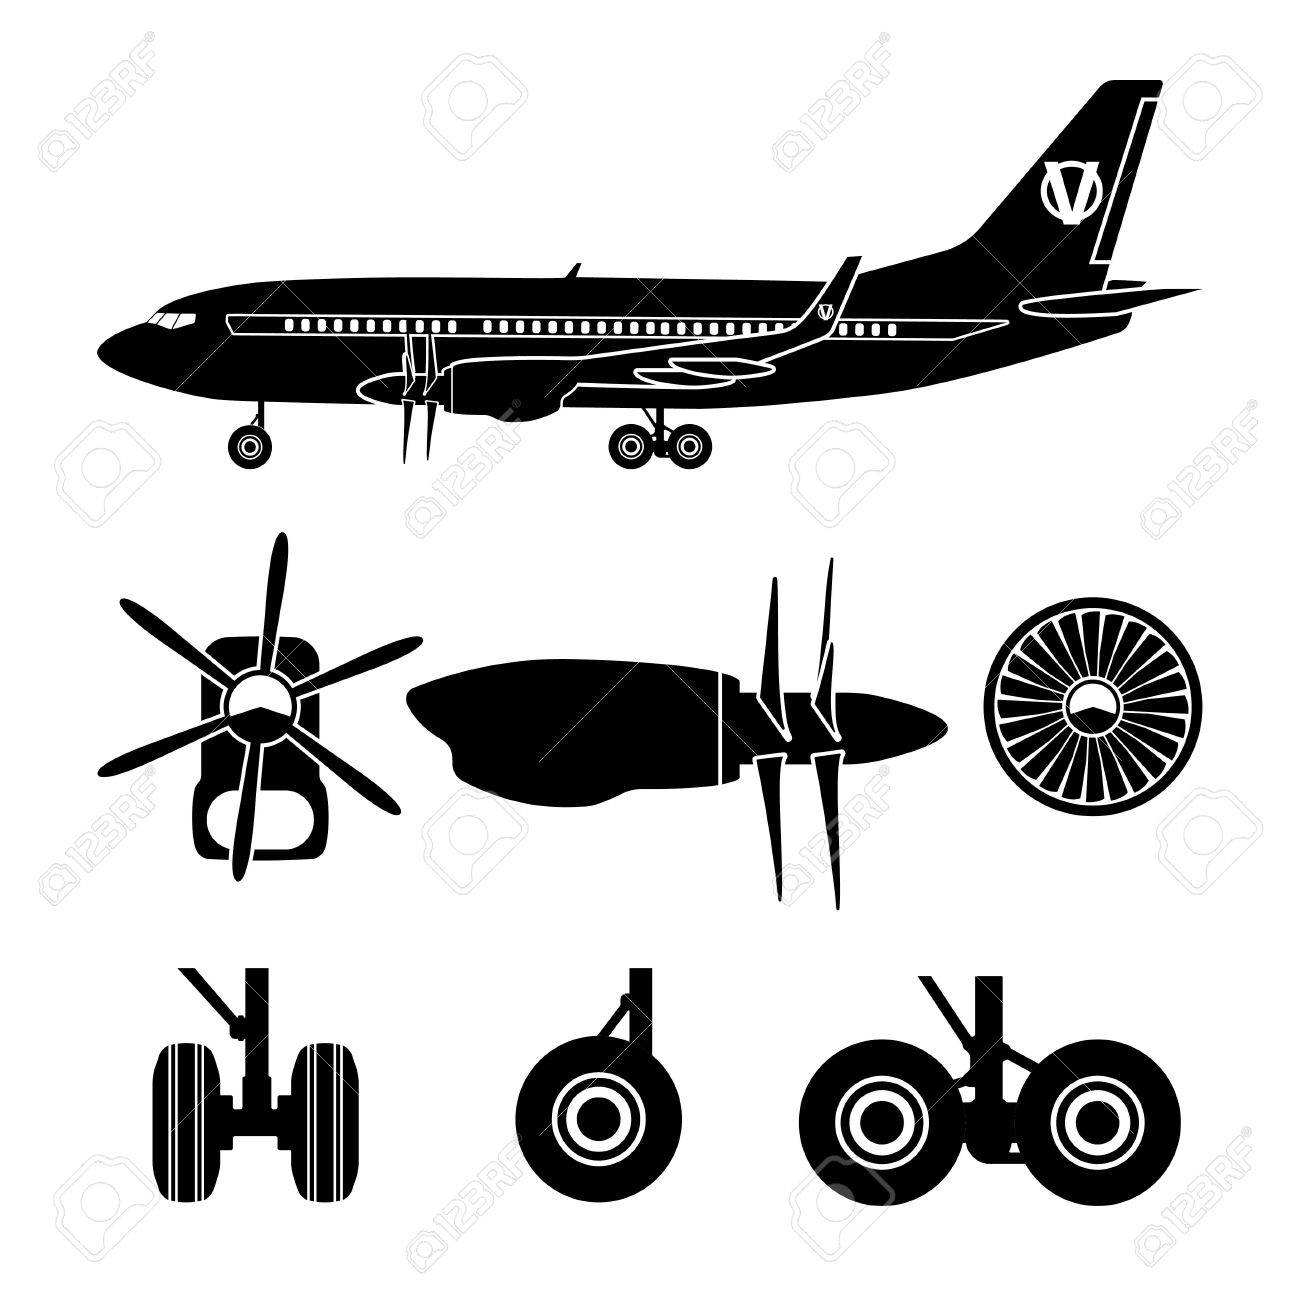 Jets constructor  Black silhouettes aircraft parts  Collection